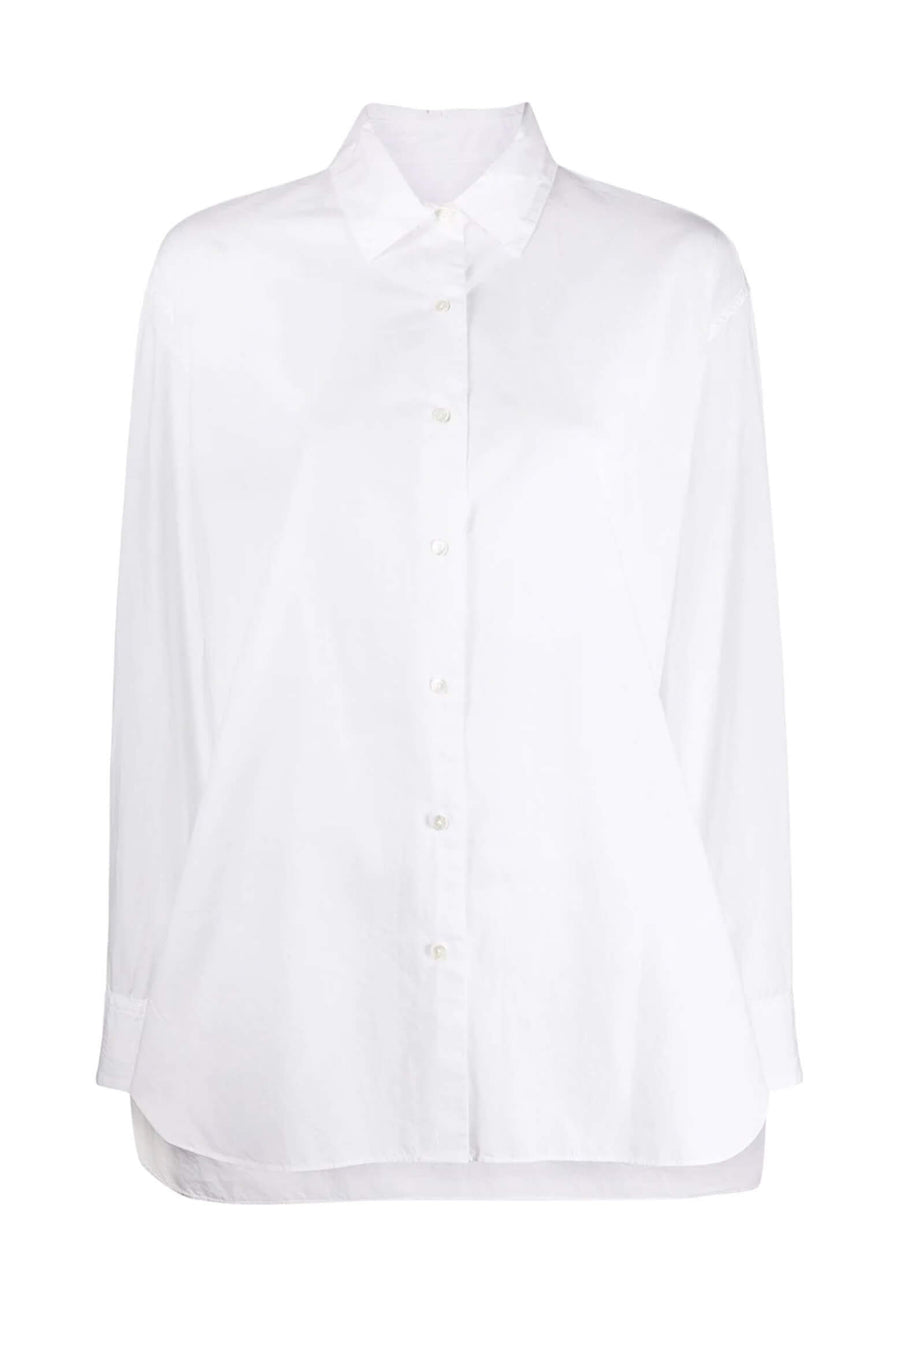 Nili Lotan Yorke Shirt in White from The New Trend